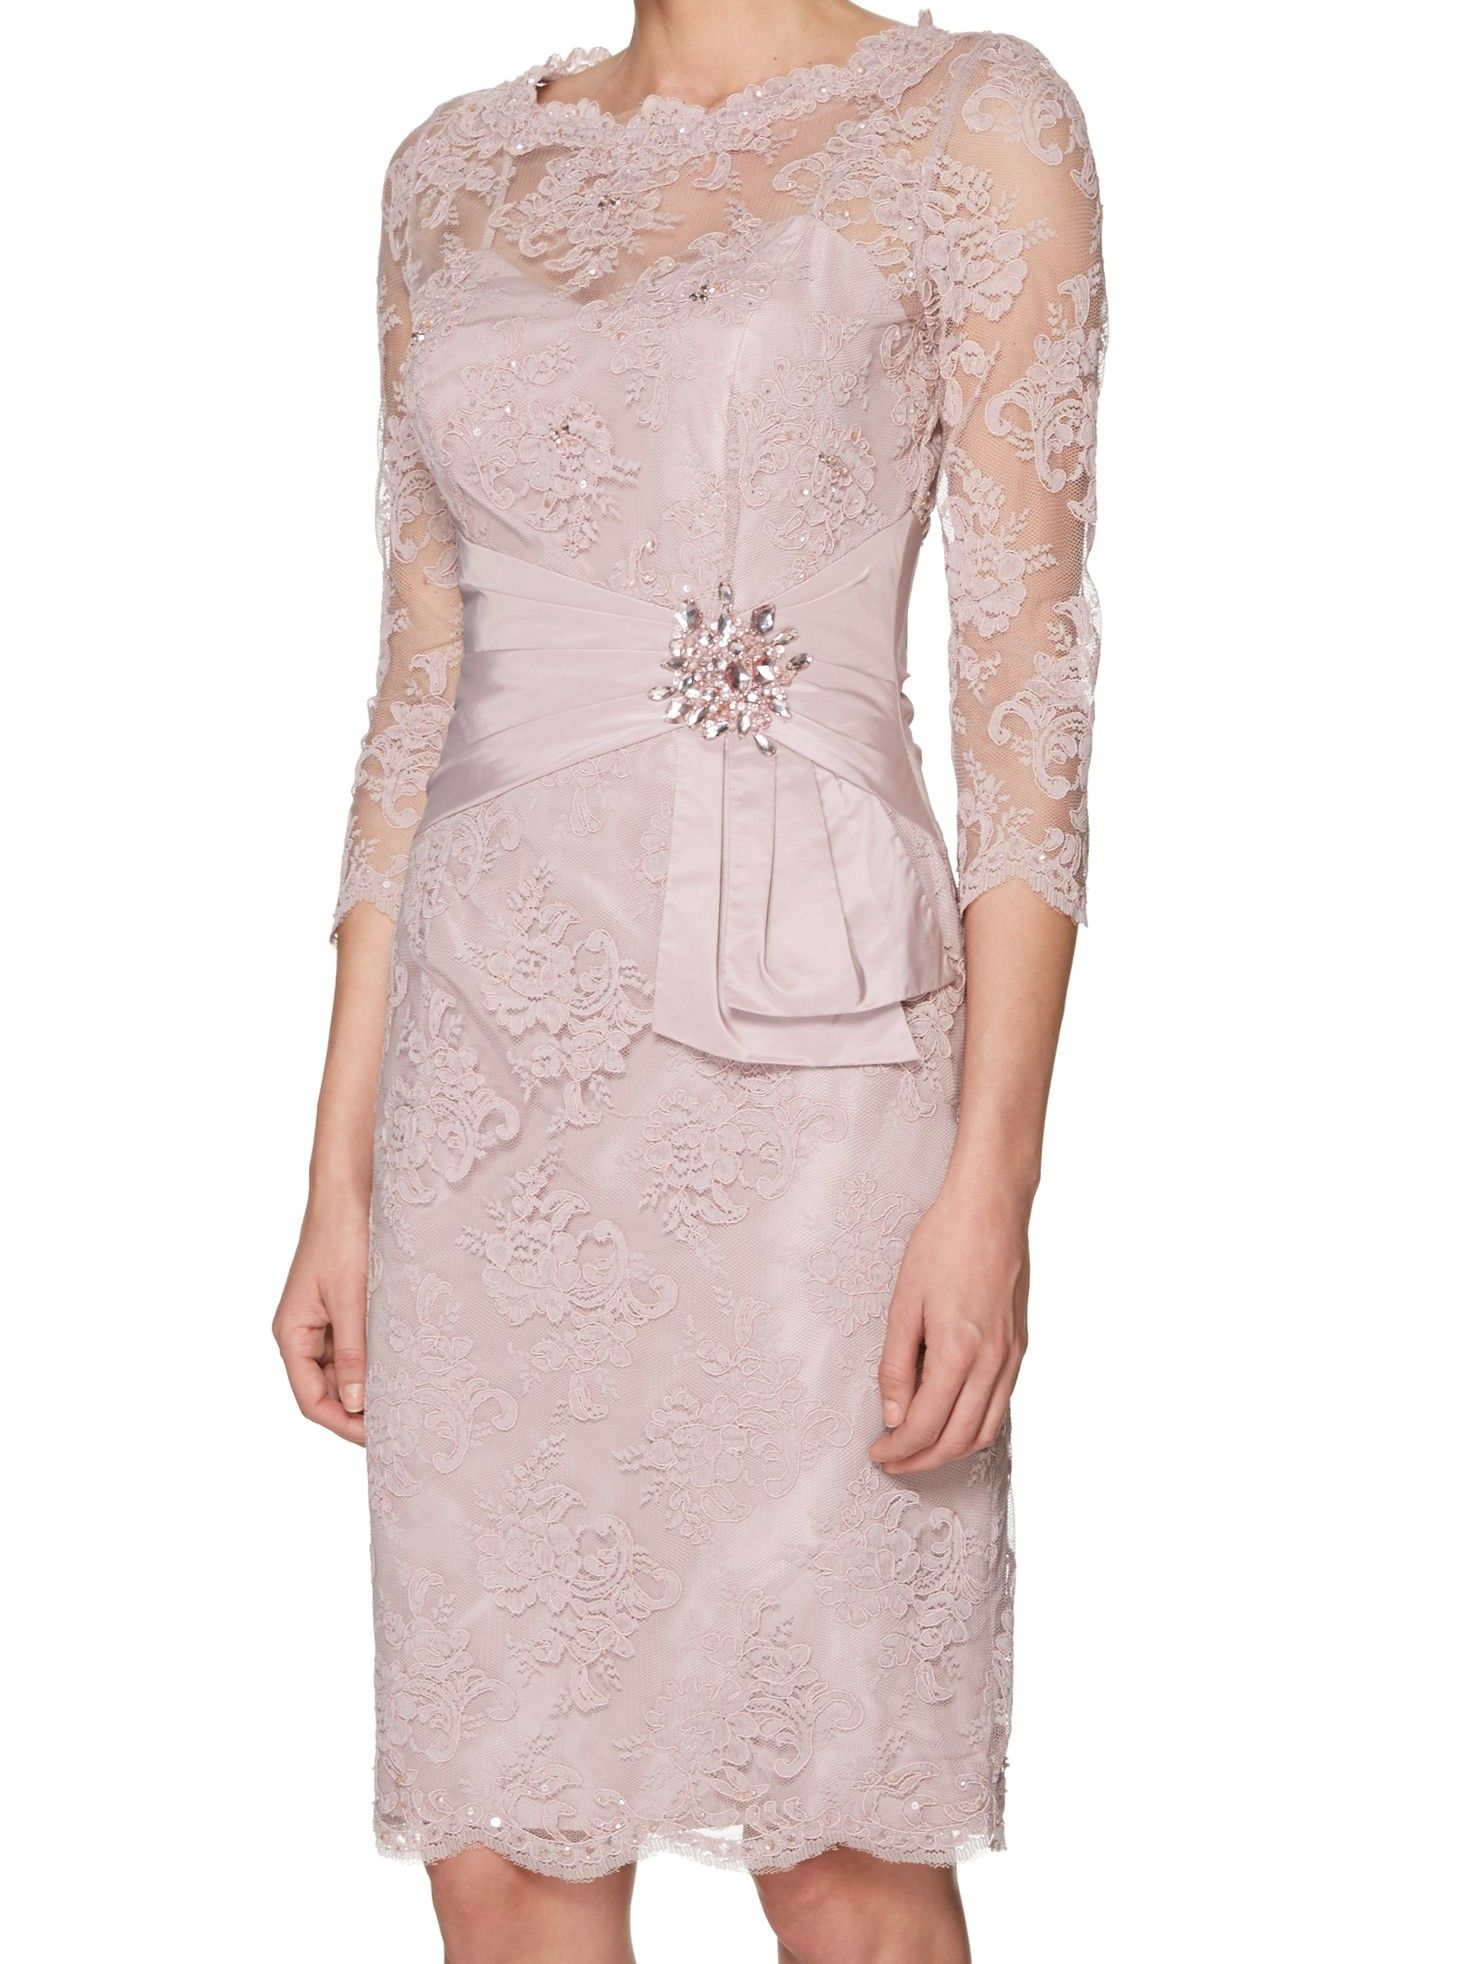 Bridesmaid and mother of the bride dresses from Anoushka G ...